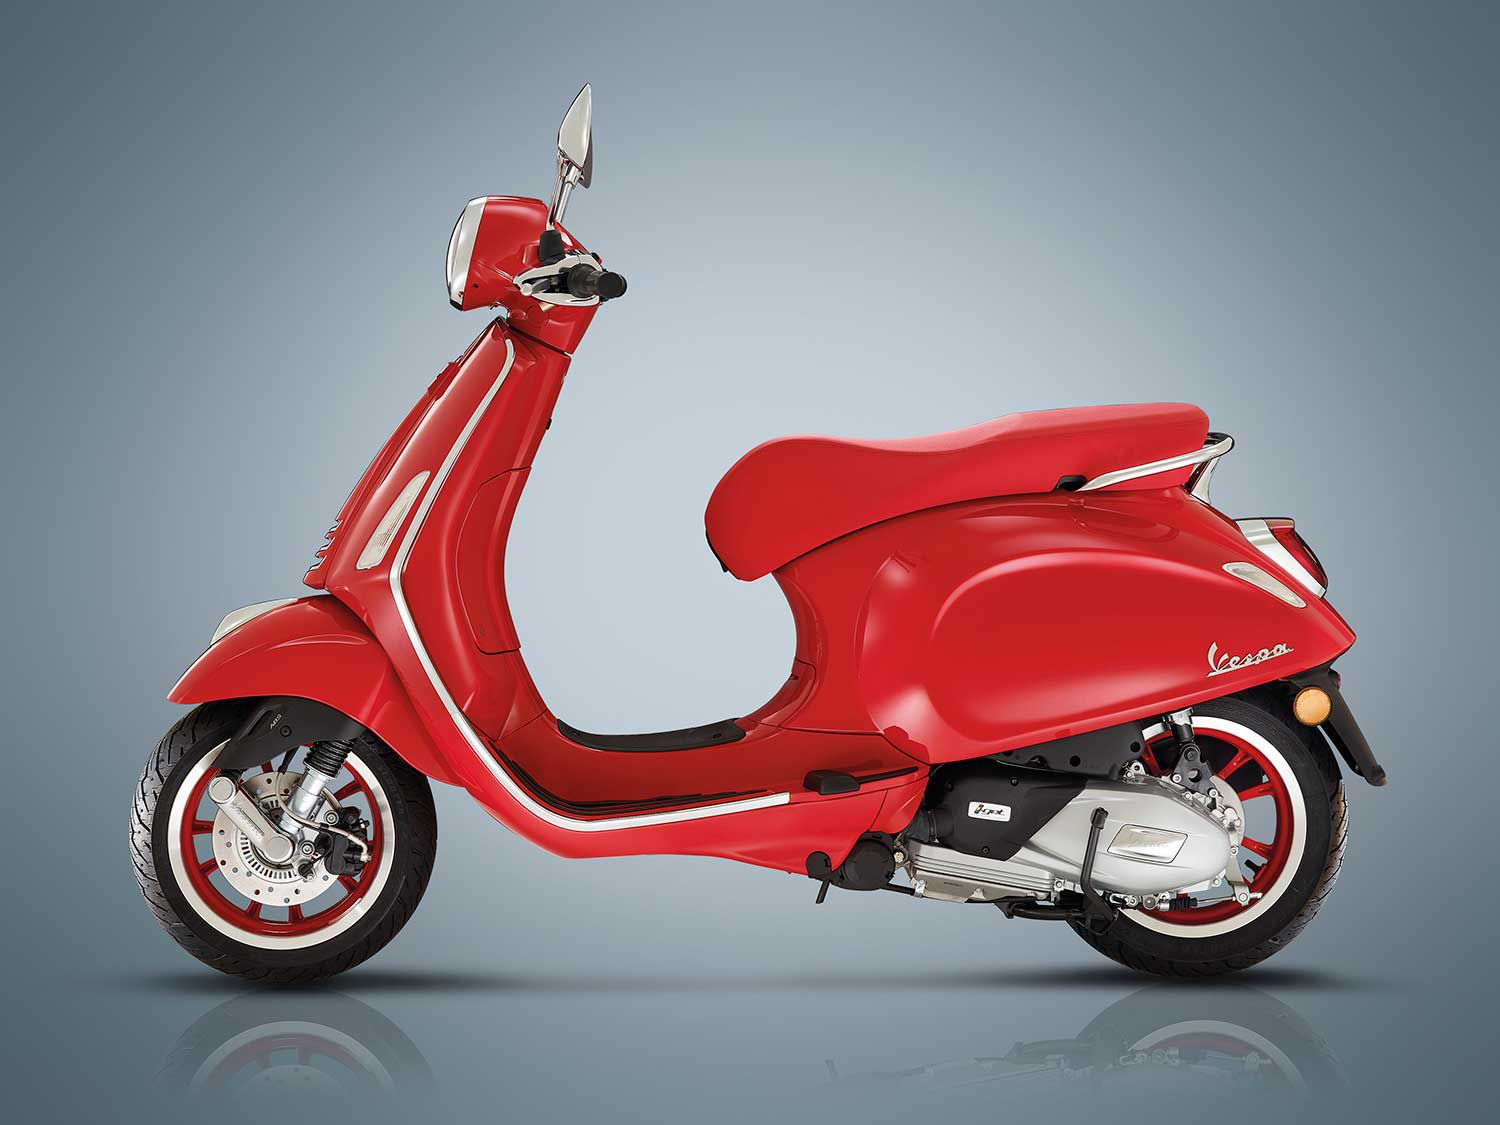 <h2>2020 Vespa Primavera 125</h2> </br> The Vespa Primavera 125 (RED) signifies the fundraising partnership between Vespa and (RED) in the fight against AIDS.